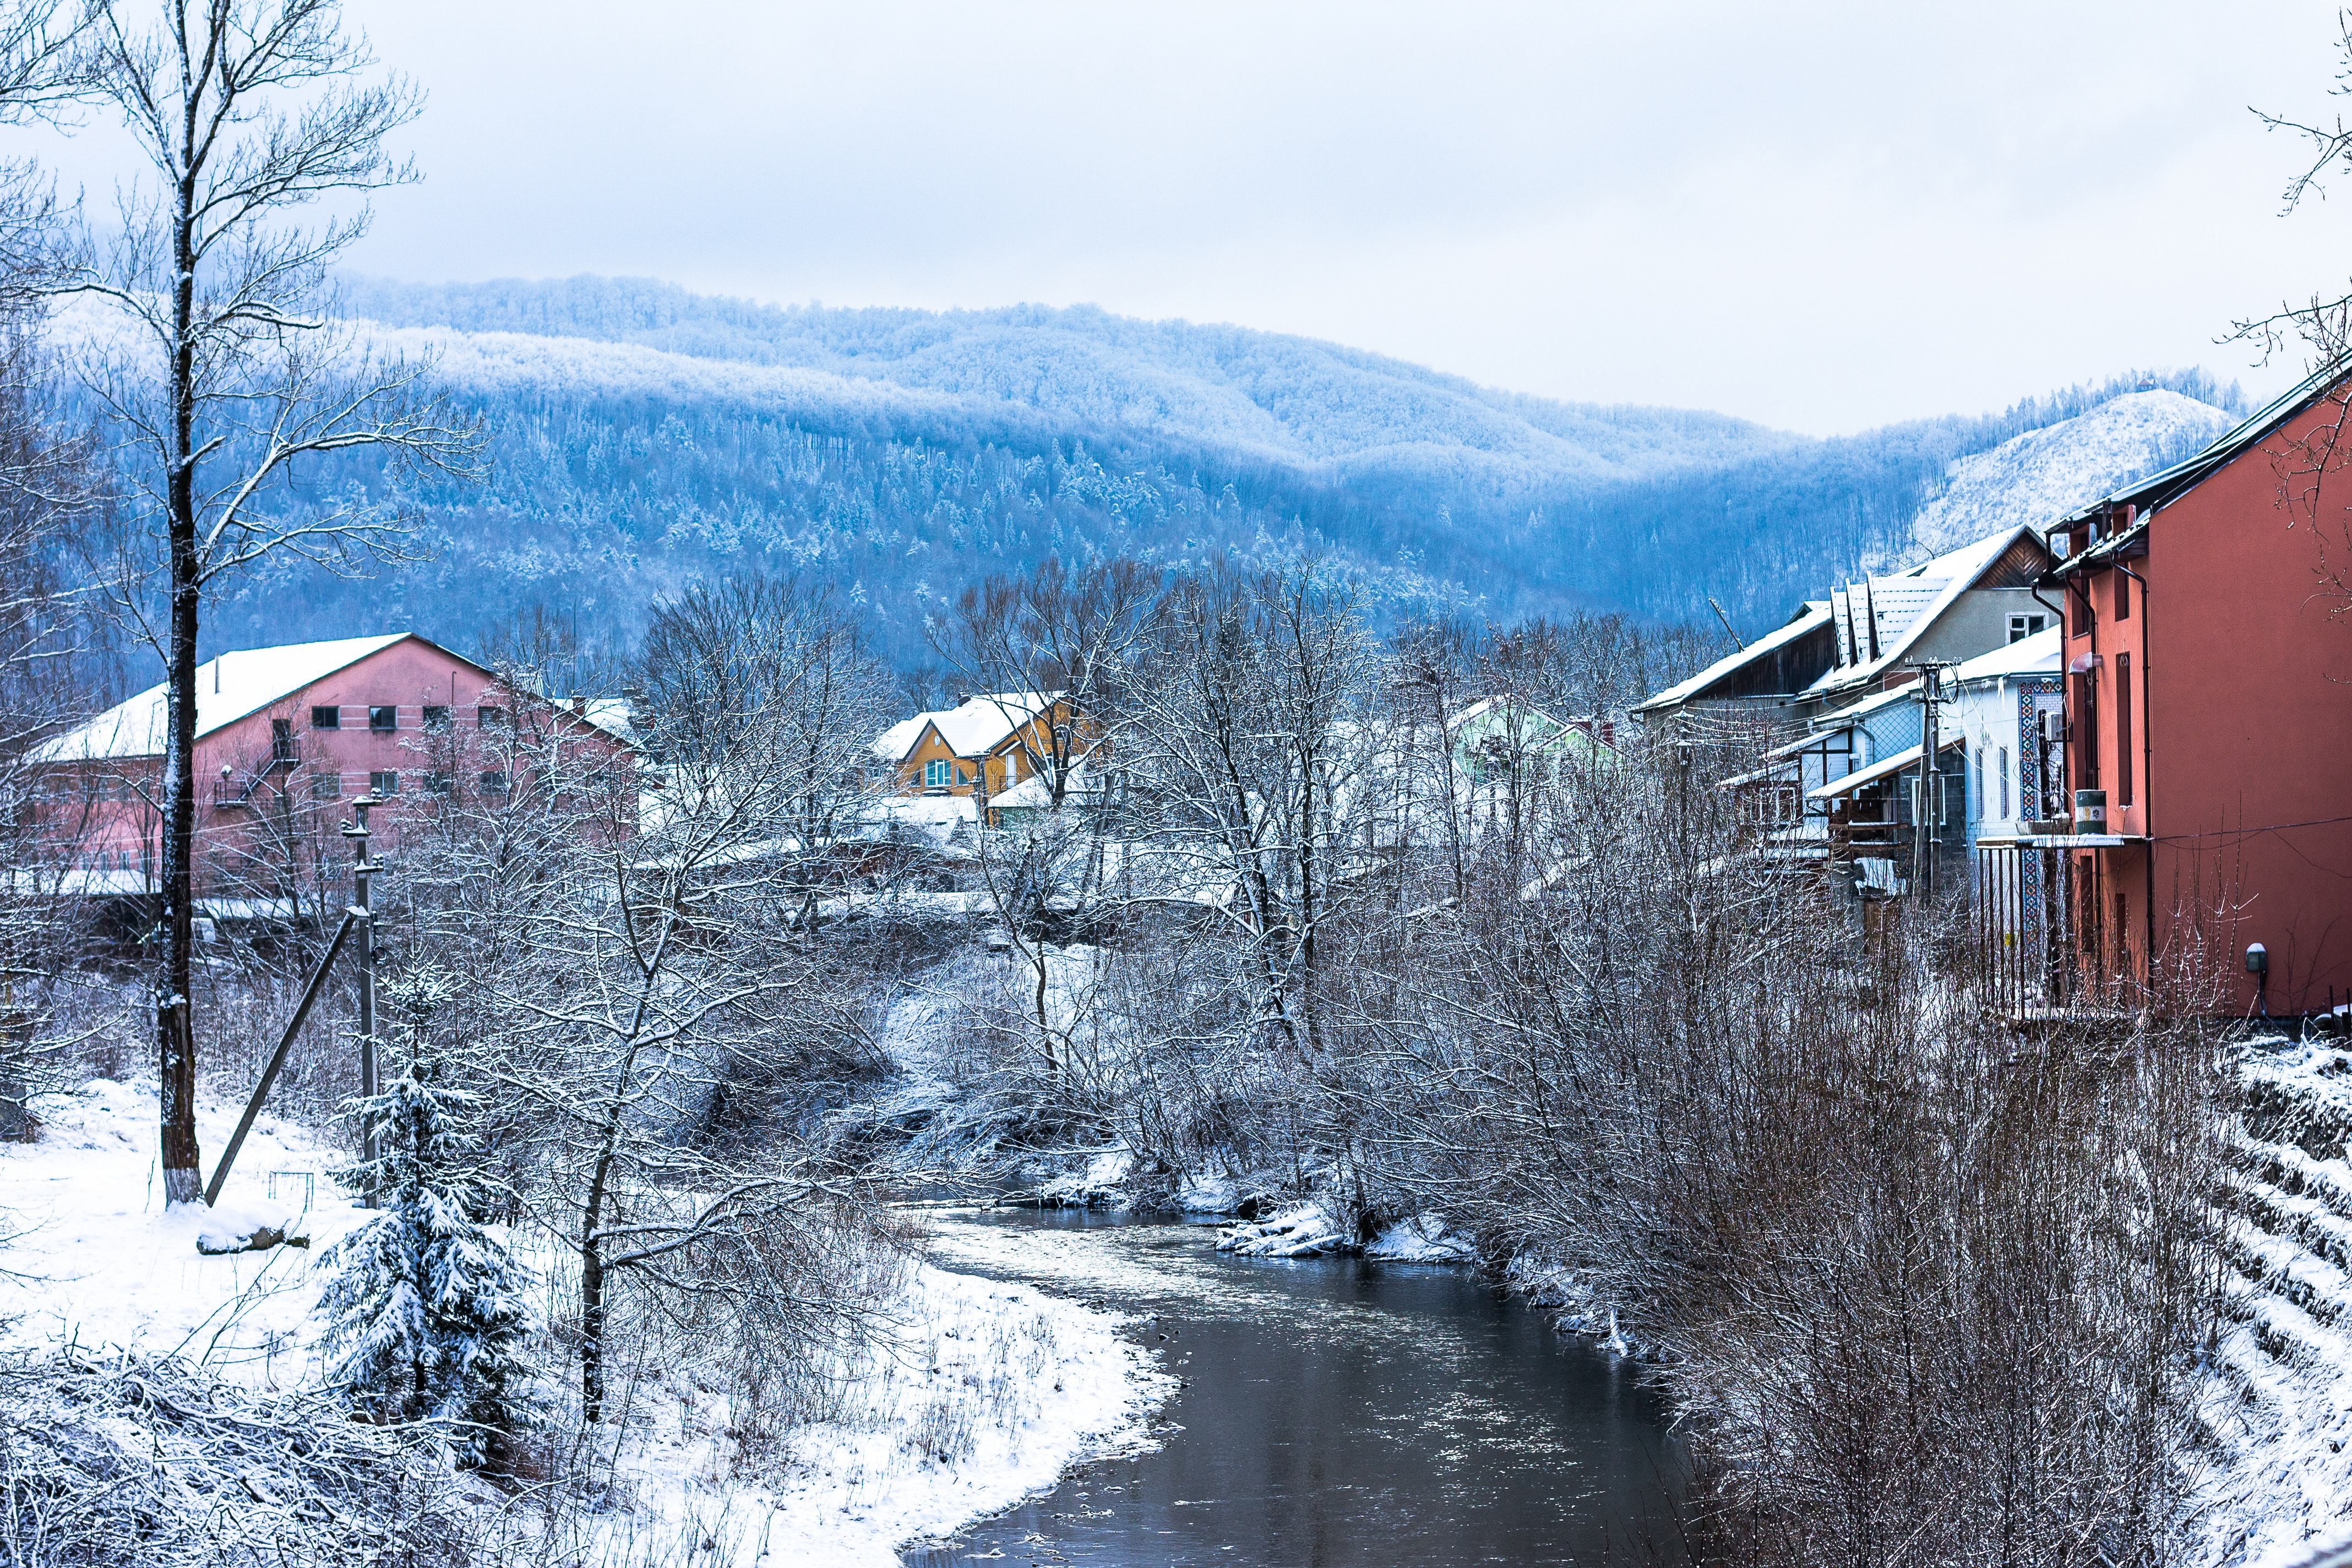 River Surround by Bare Tree Top View, Cold, Mountains, Winter, Weather, HQ Photo